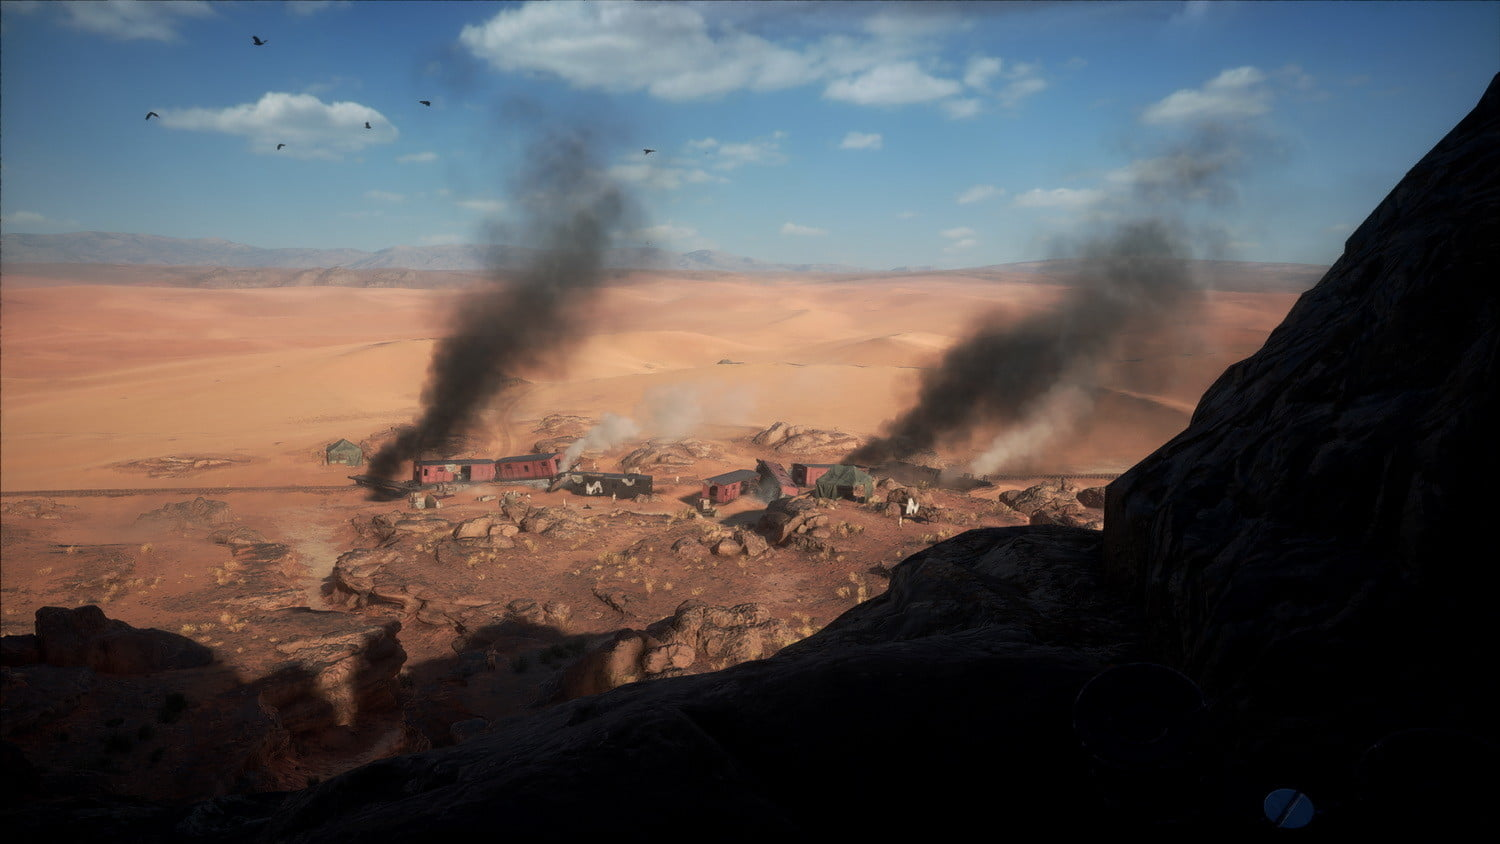 battlefield 1 pc performance guide how to maximize fps bf1 postproc low